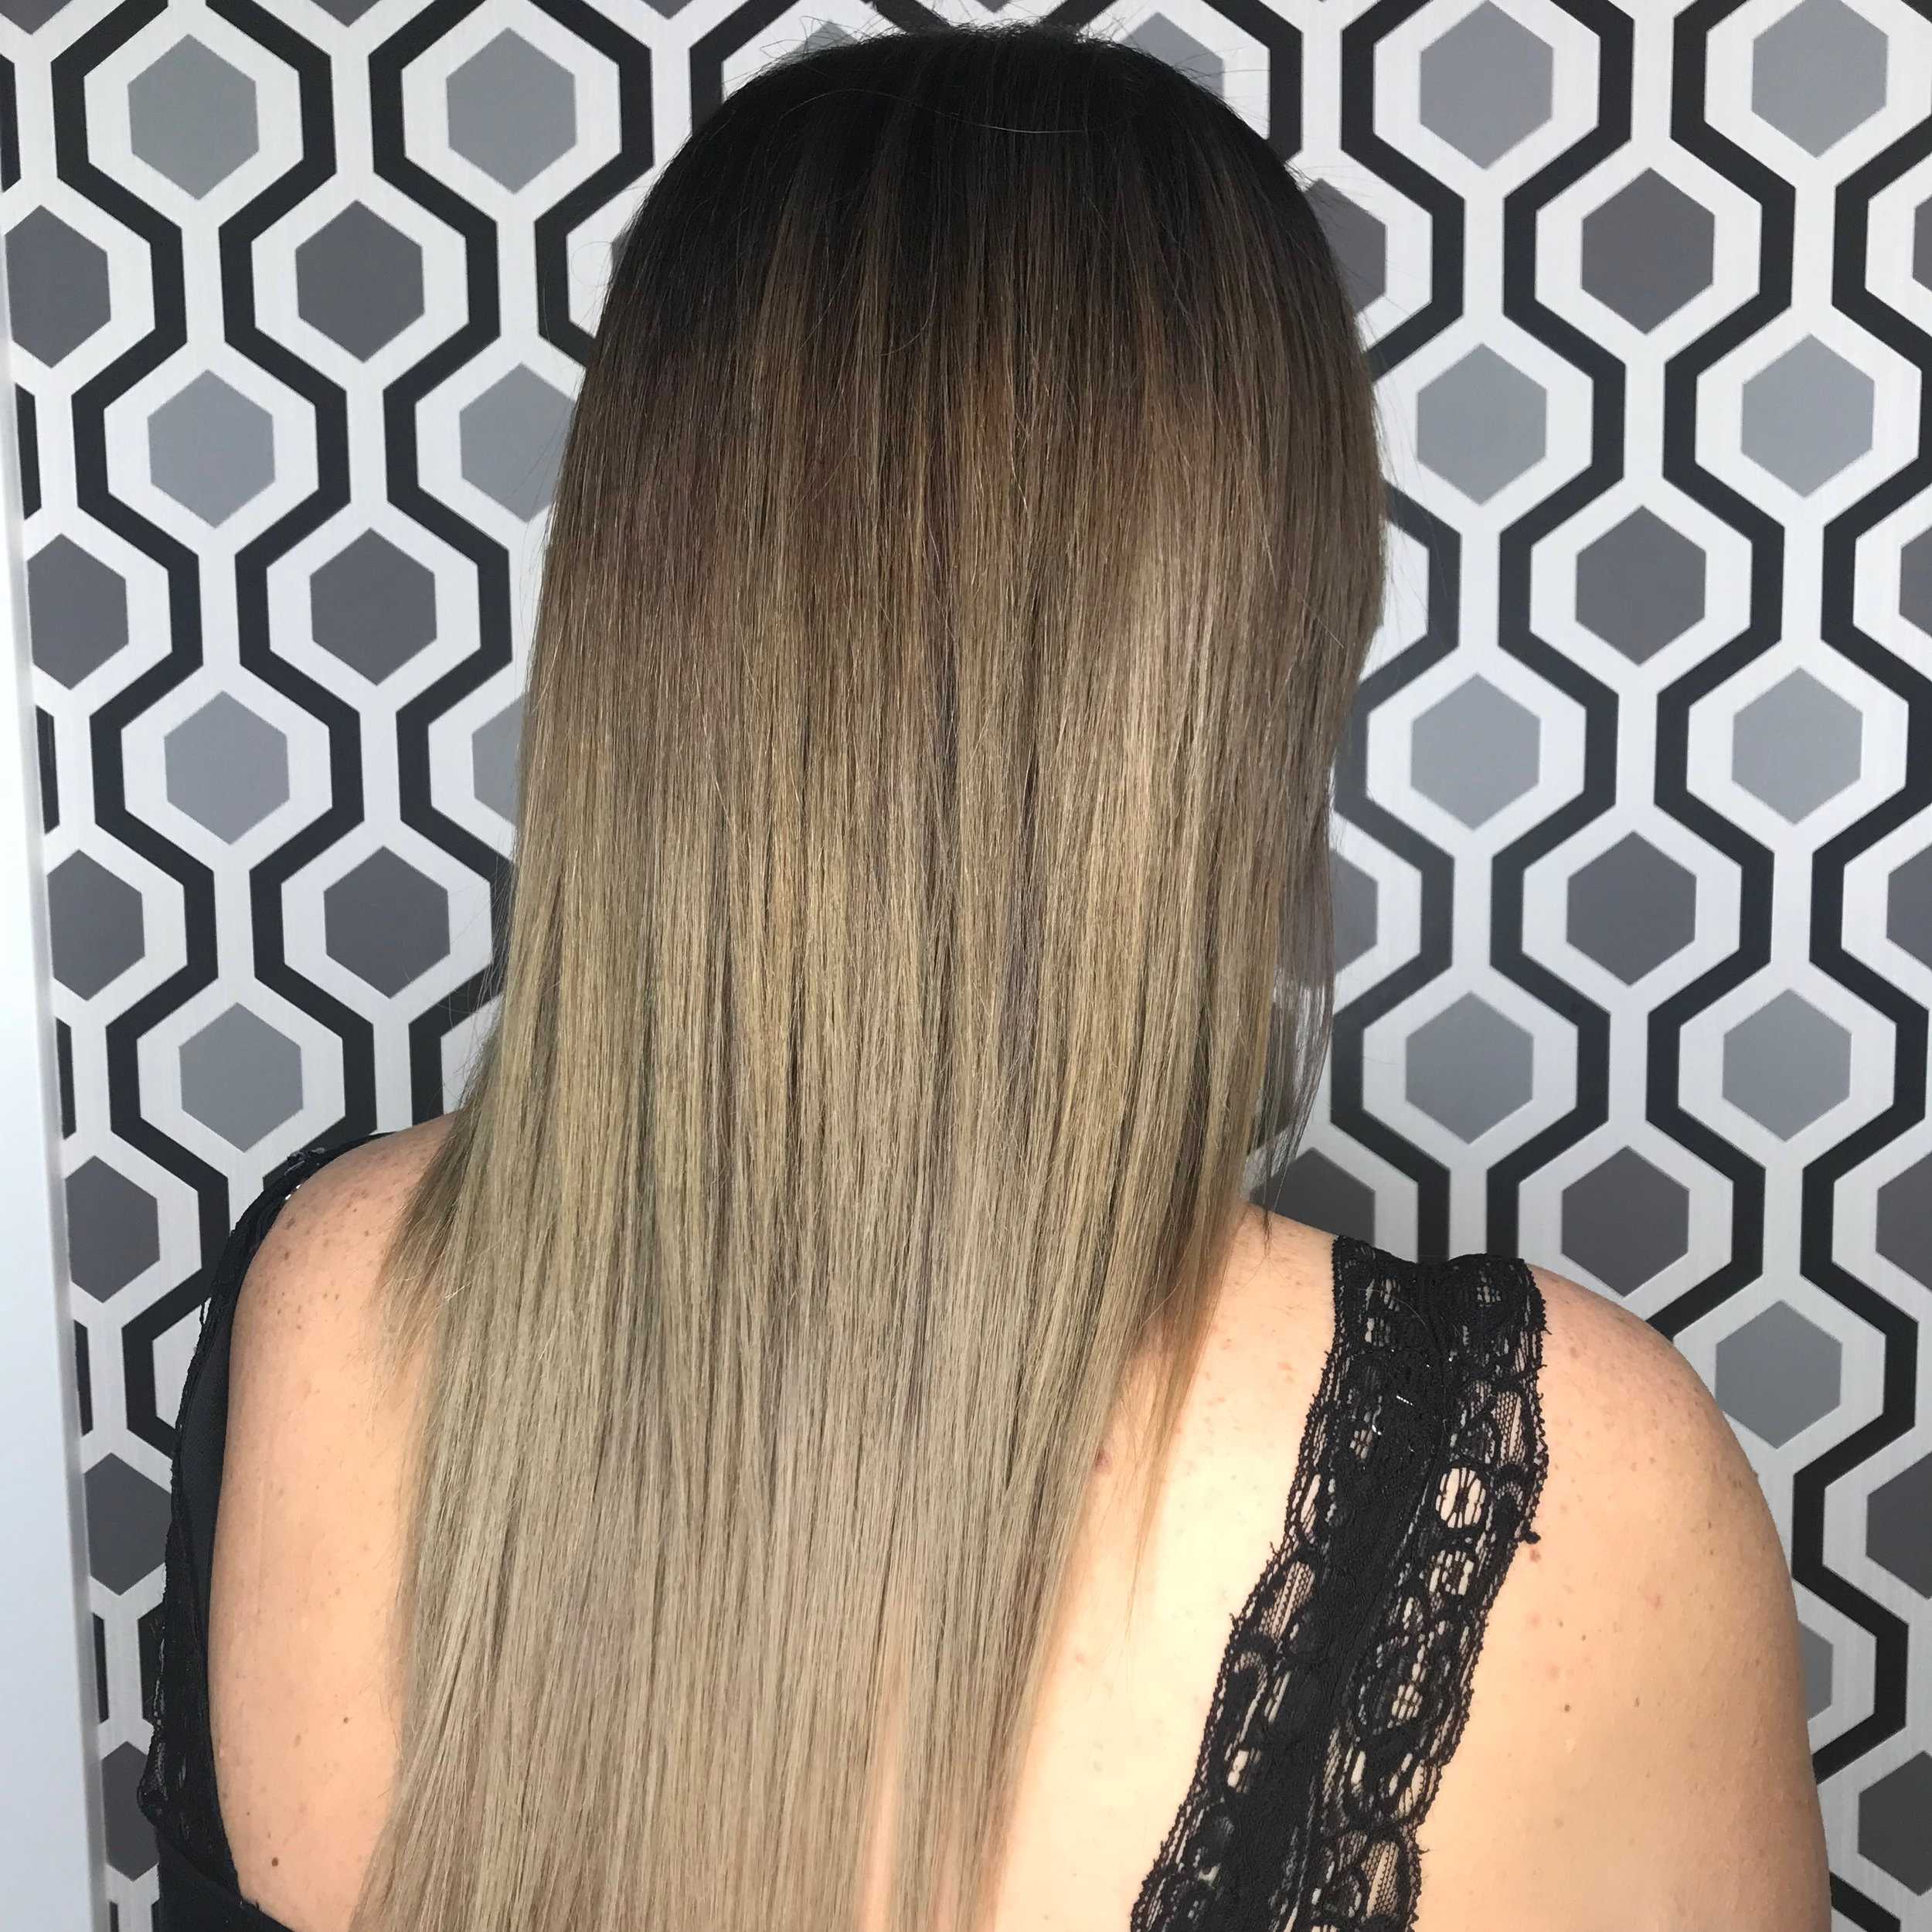 Women's Haircut - Starting at $42